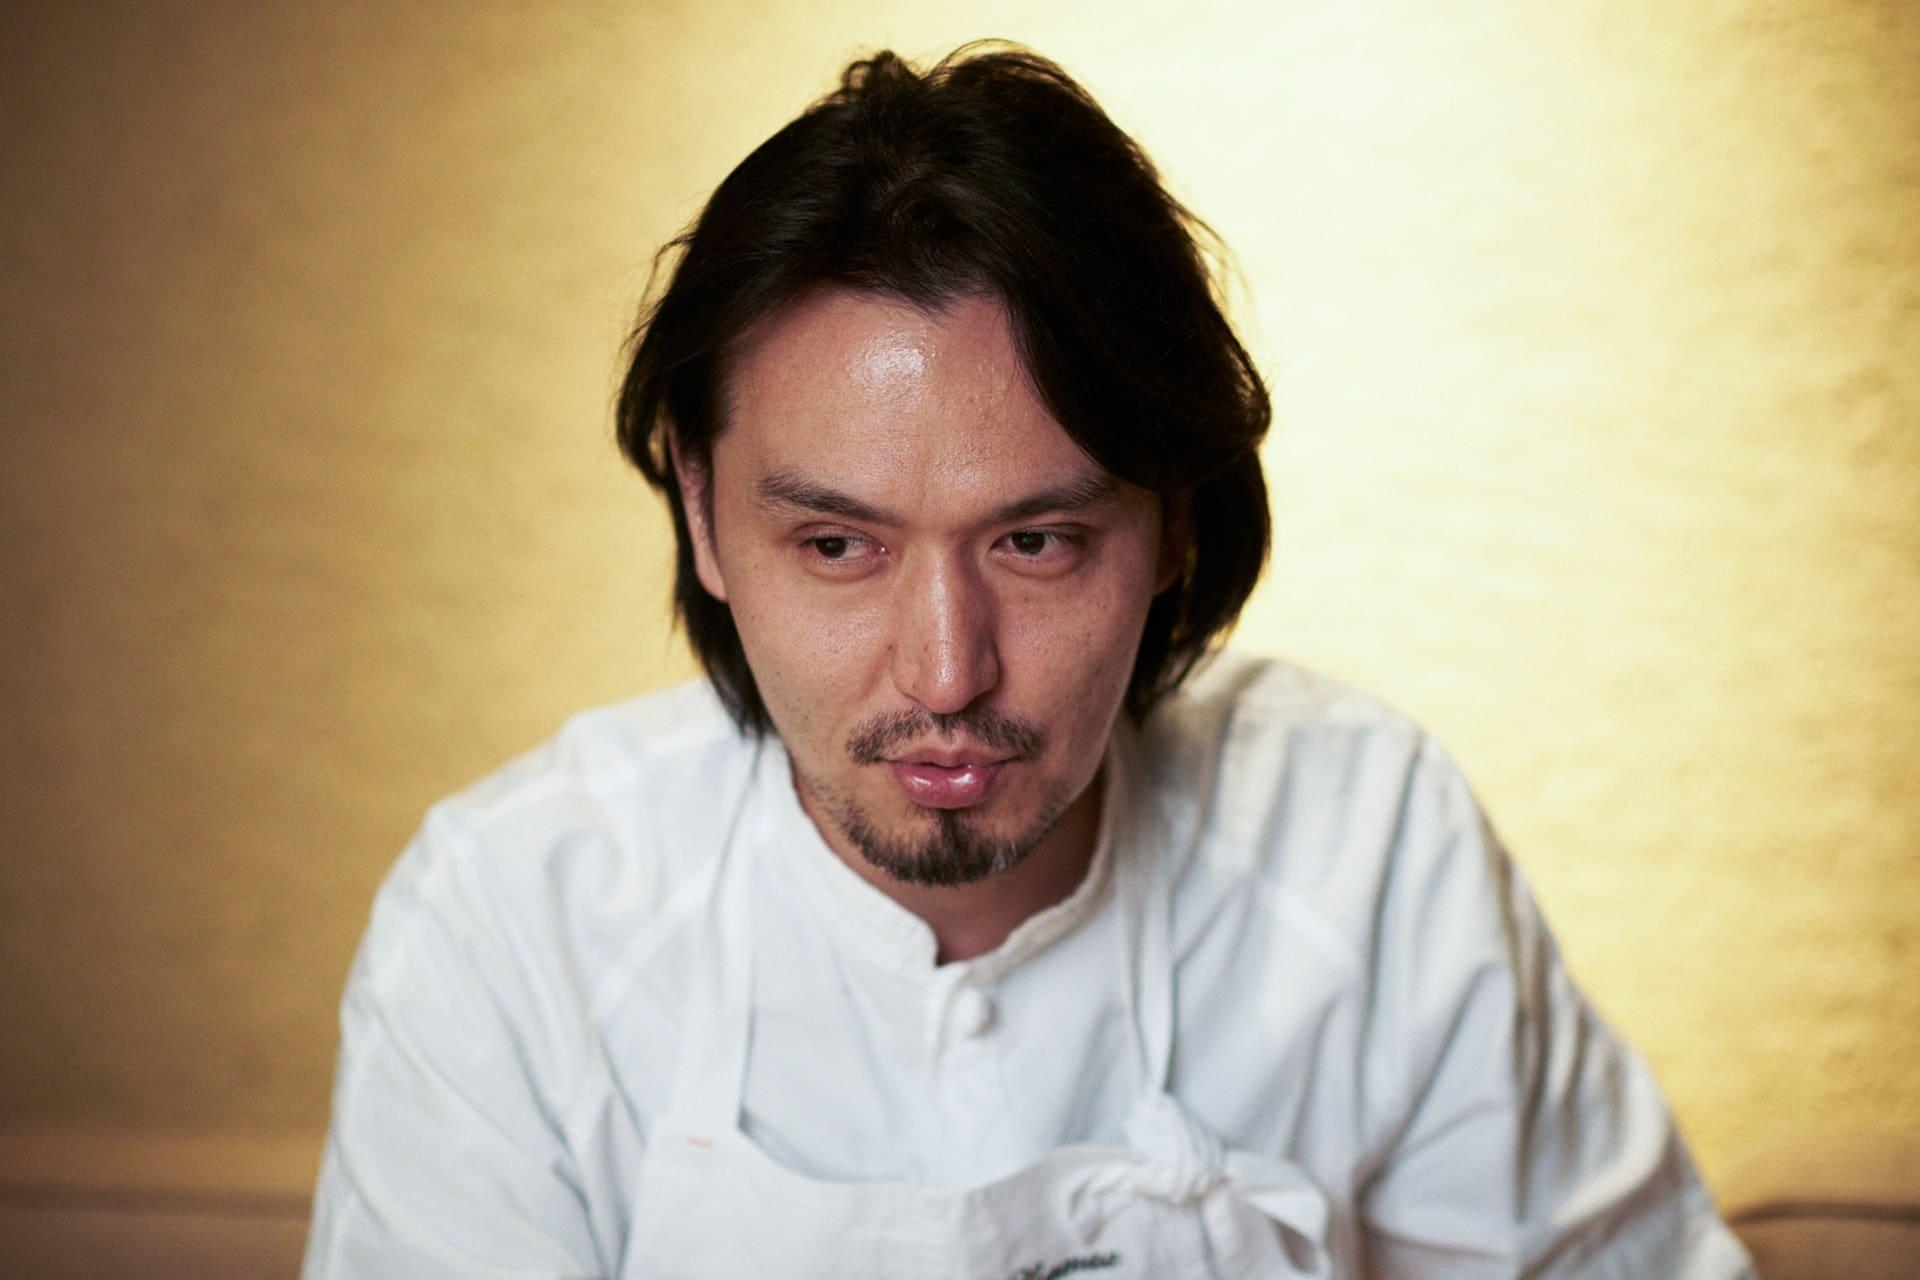 Chef Shinobu Namae